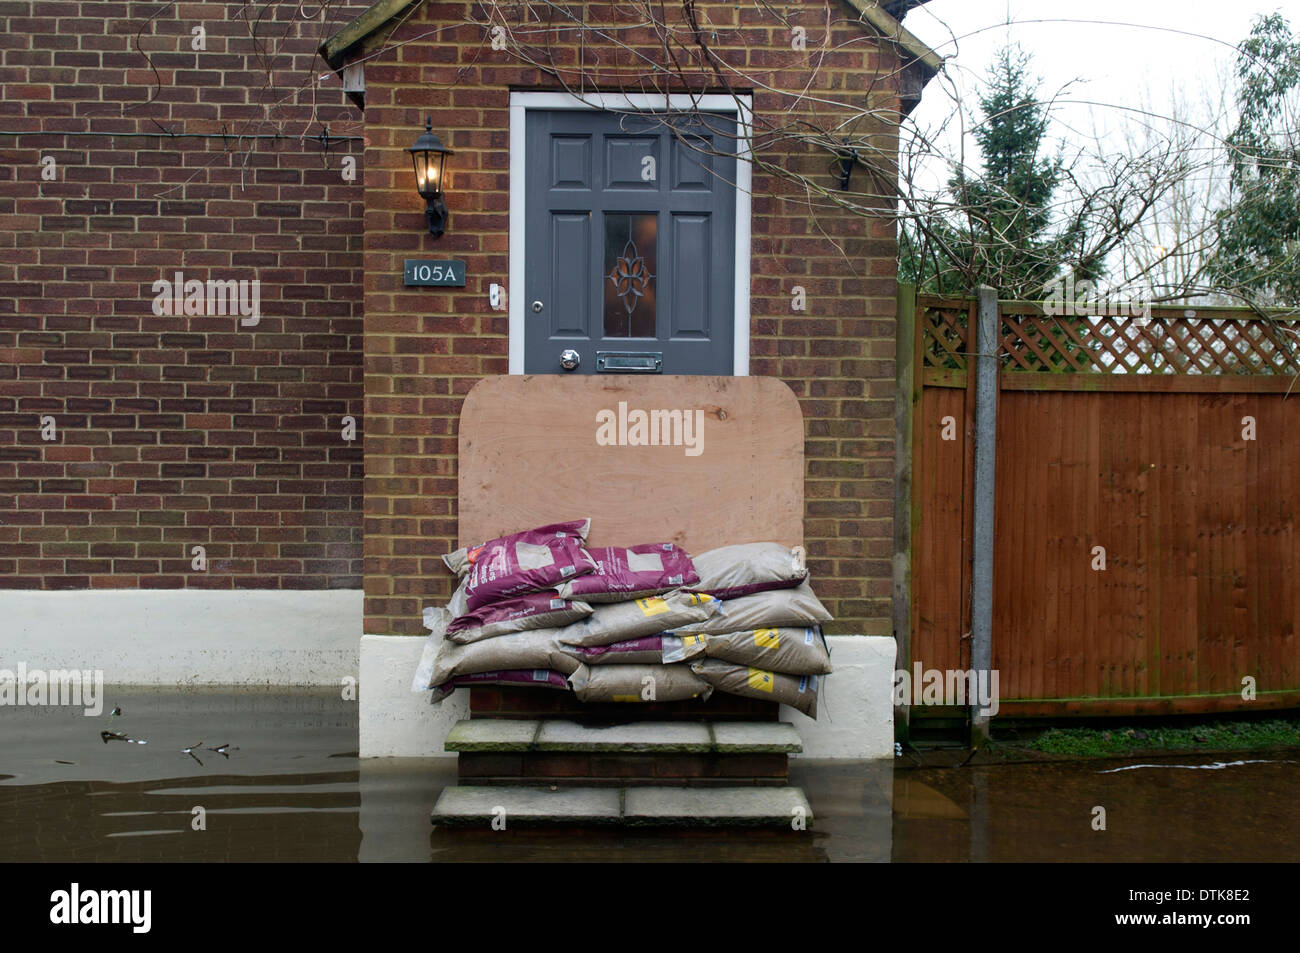 Flooded residential area and park in Staines. Driveway totally flooded with sandbags and wooden board covering front door and steps for protection. Driveway has twin white garages. - Stock Image